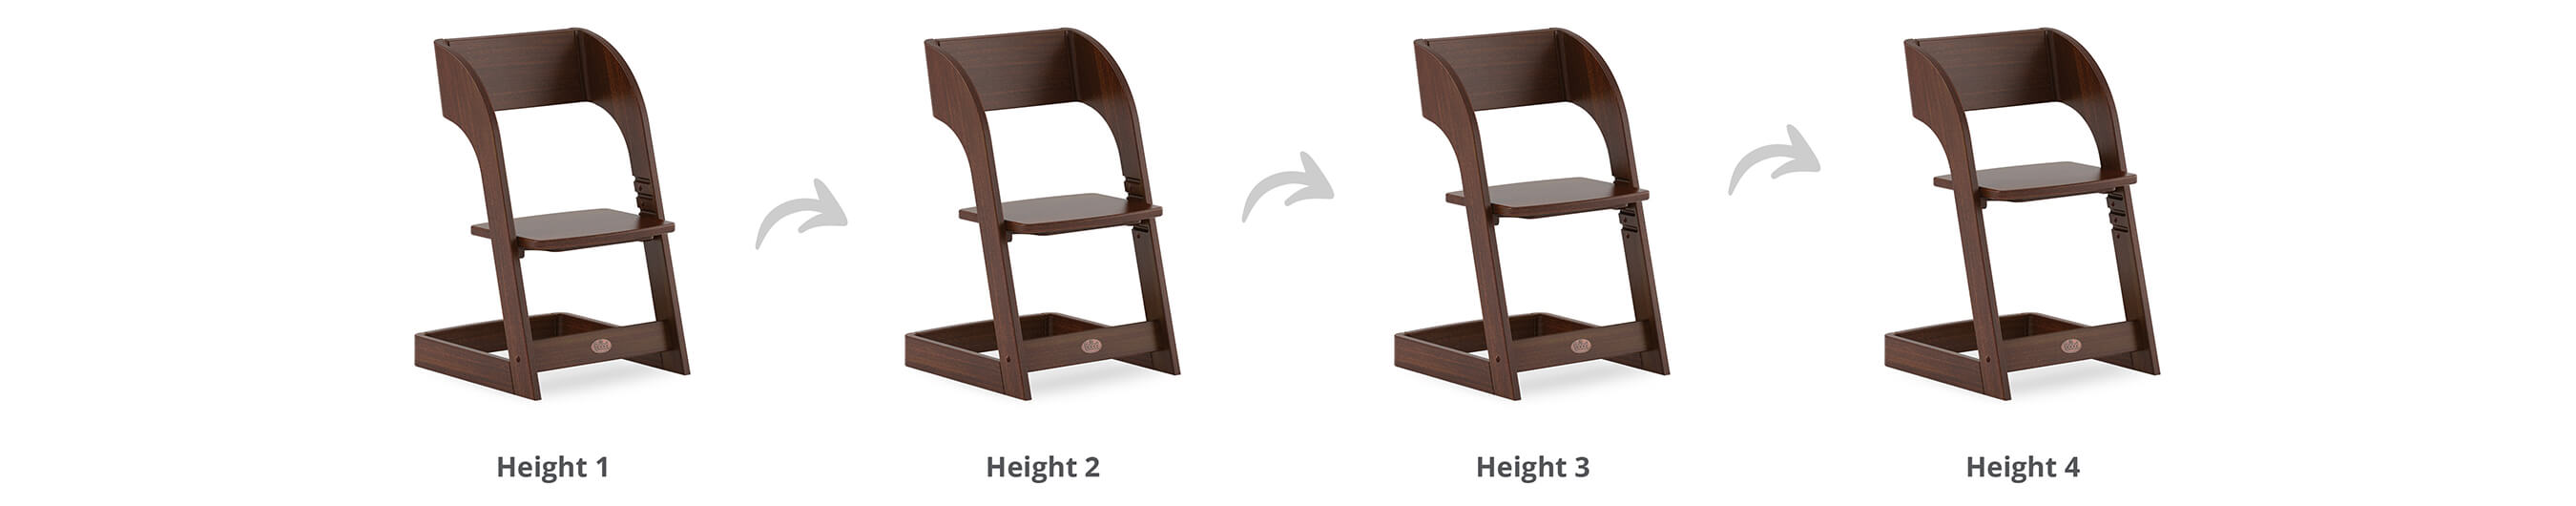 Feature_Highlight_CMS_Blocks_Height_Adjustable_Desks_and_Chairs_January_2021-05